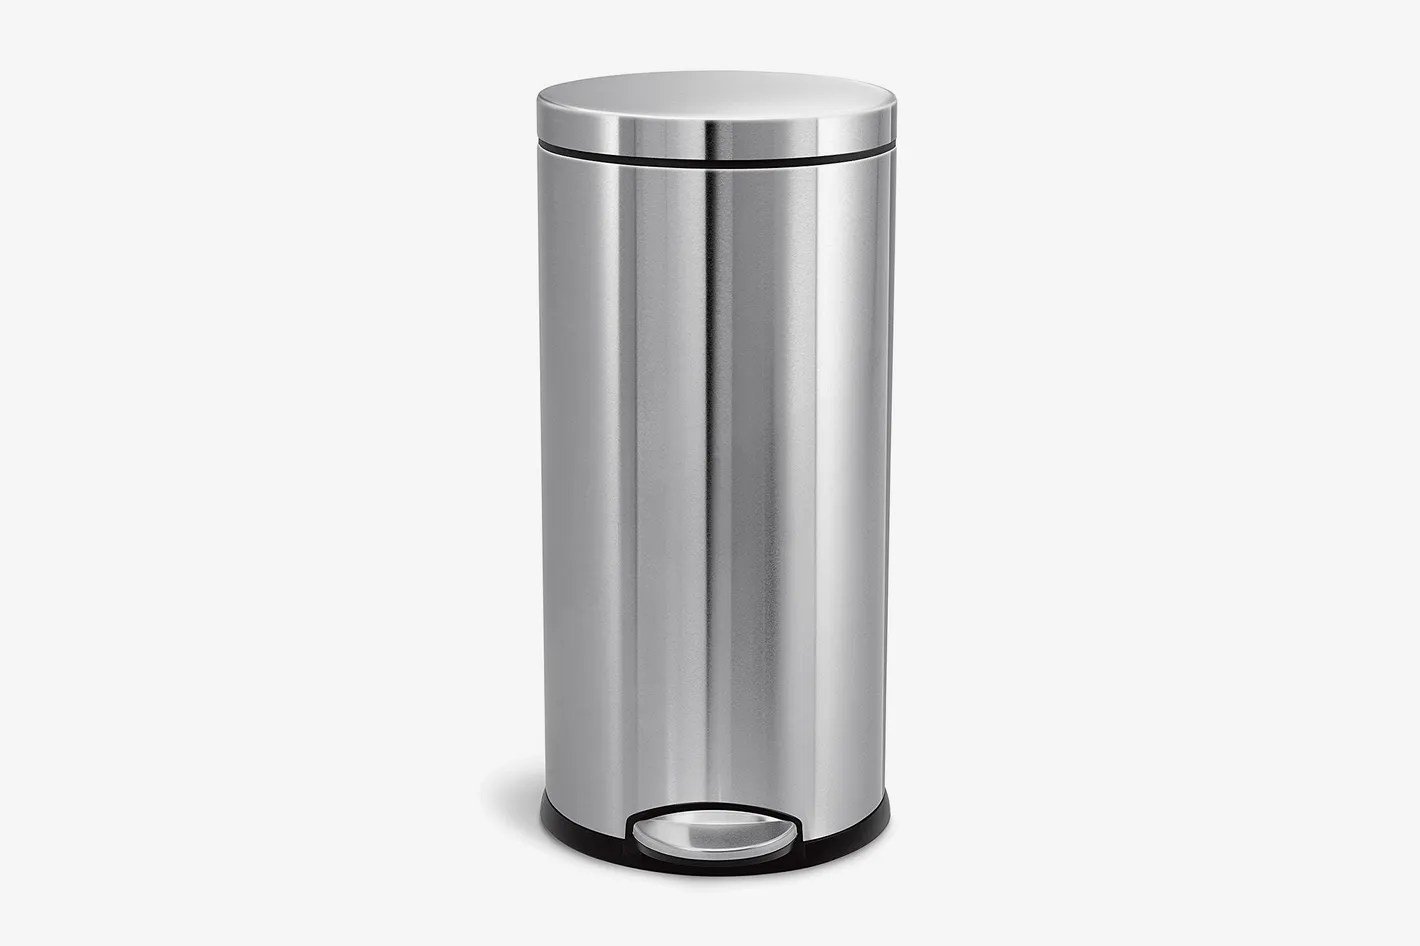 Colorful Garbage Cans Simplehuman 30 Liter 8 Gallon Stainless Steel Round Kitchen Step Trash Can